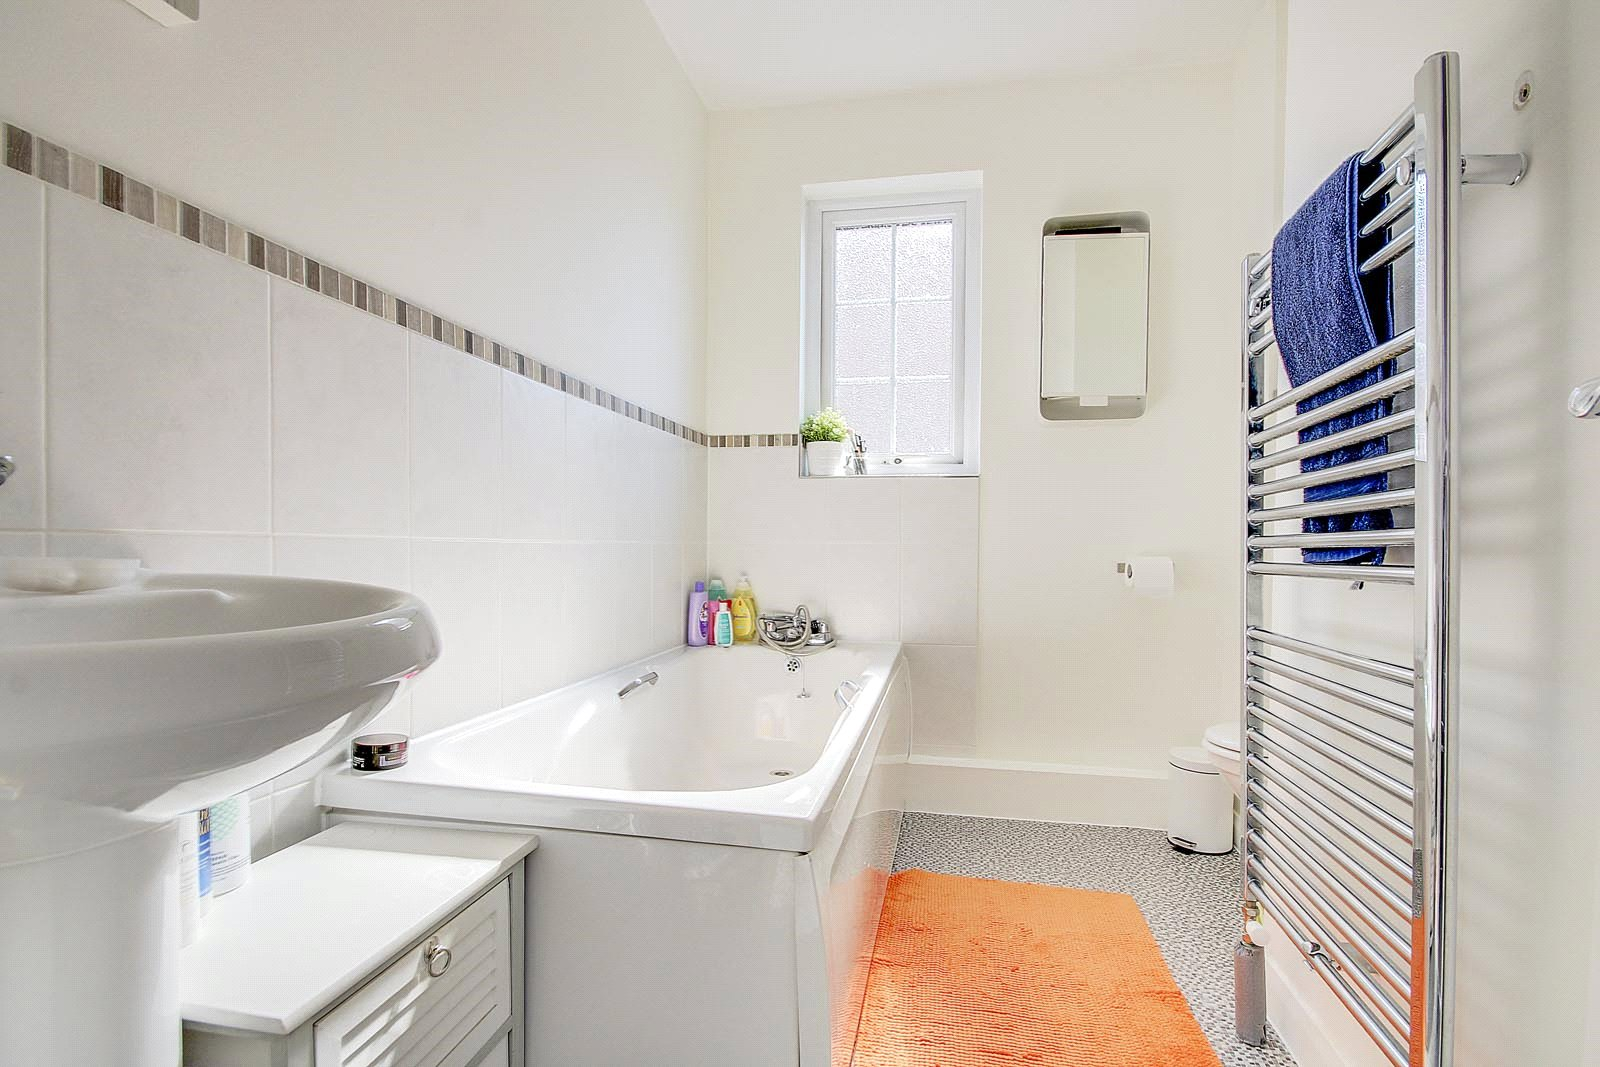 3 bed house for sale in Littlehampton, BN17 6RJ  - Property Image 7